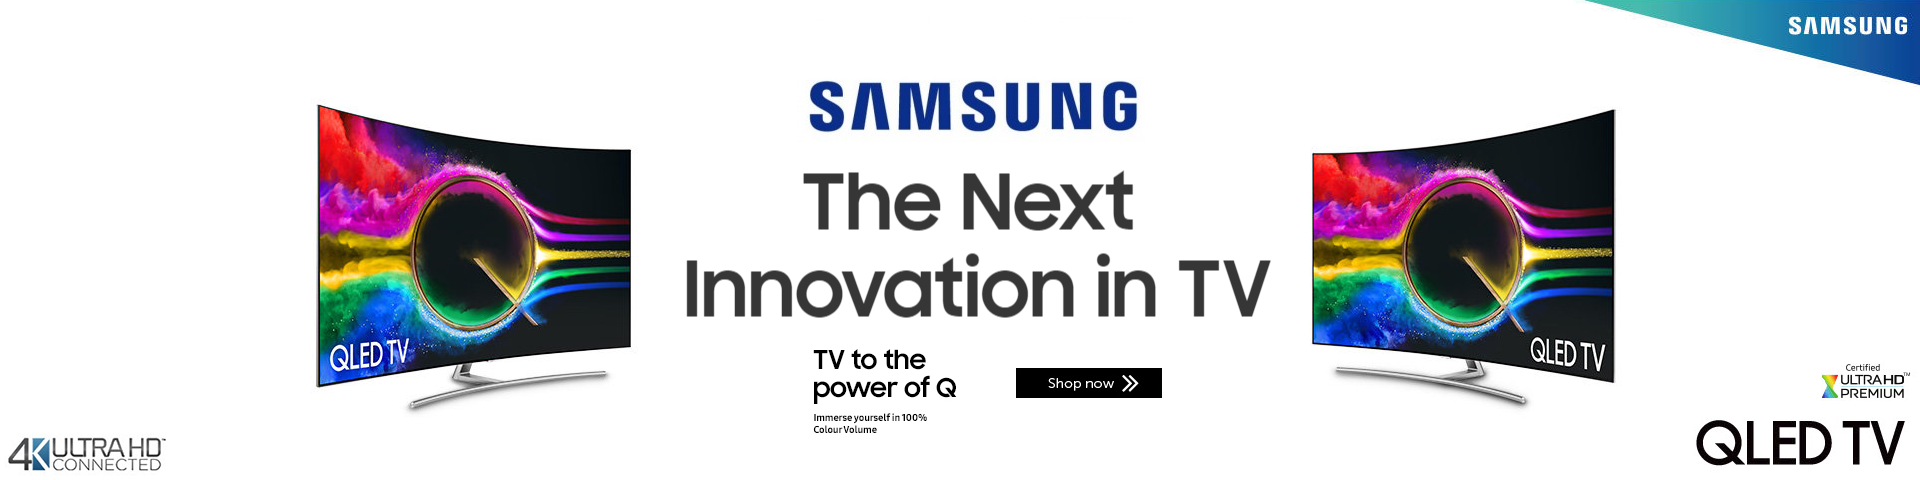 *Samsung QLED - The Next Innovation in TV